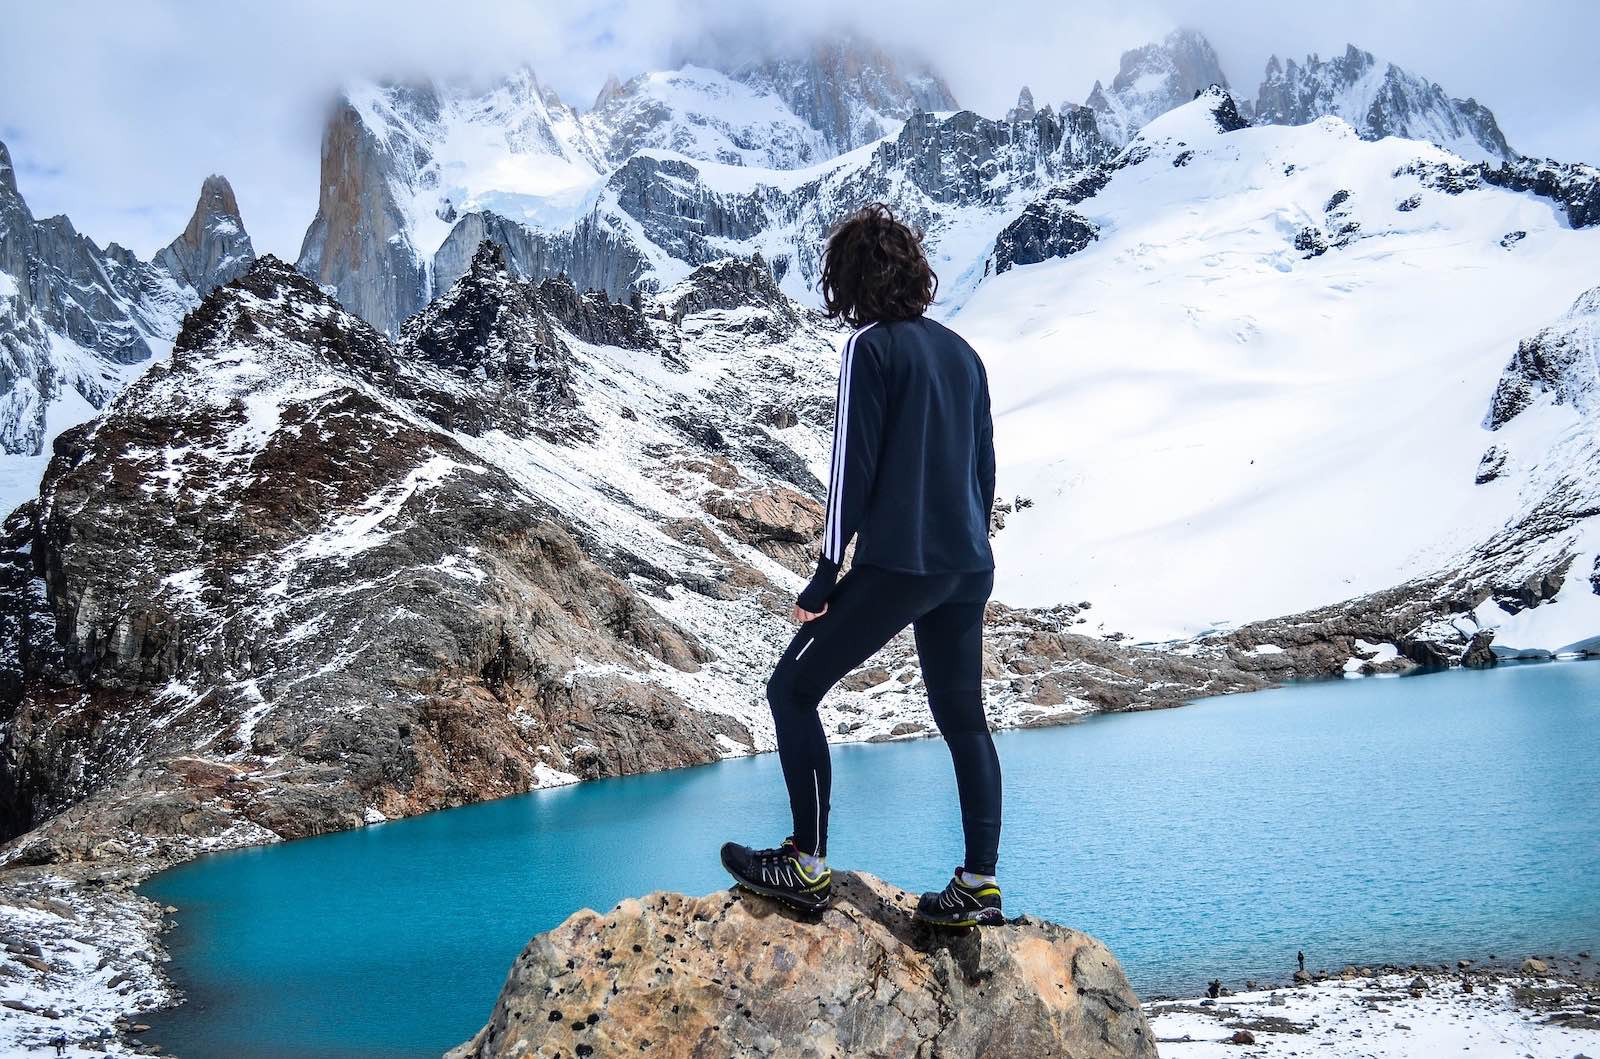 Trekking opportunities at El Chalten are breath taking.